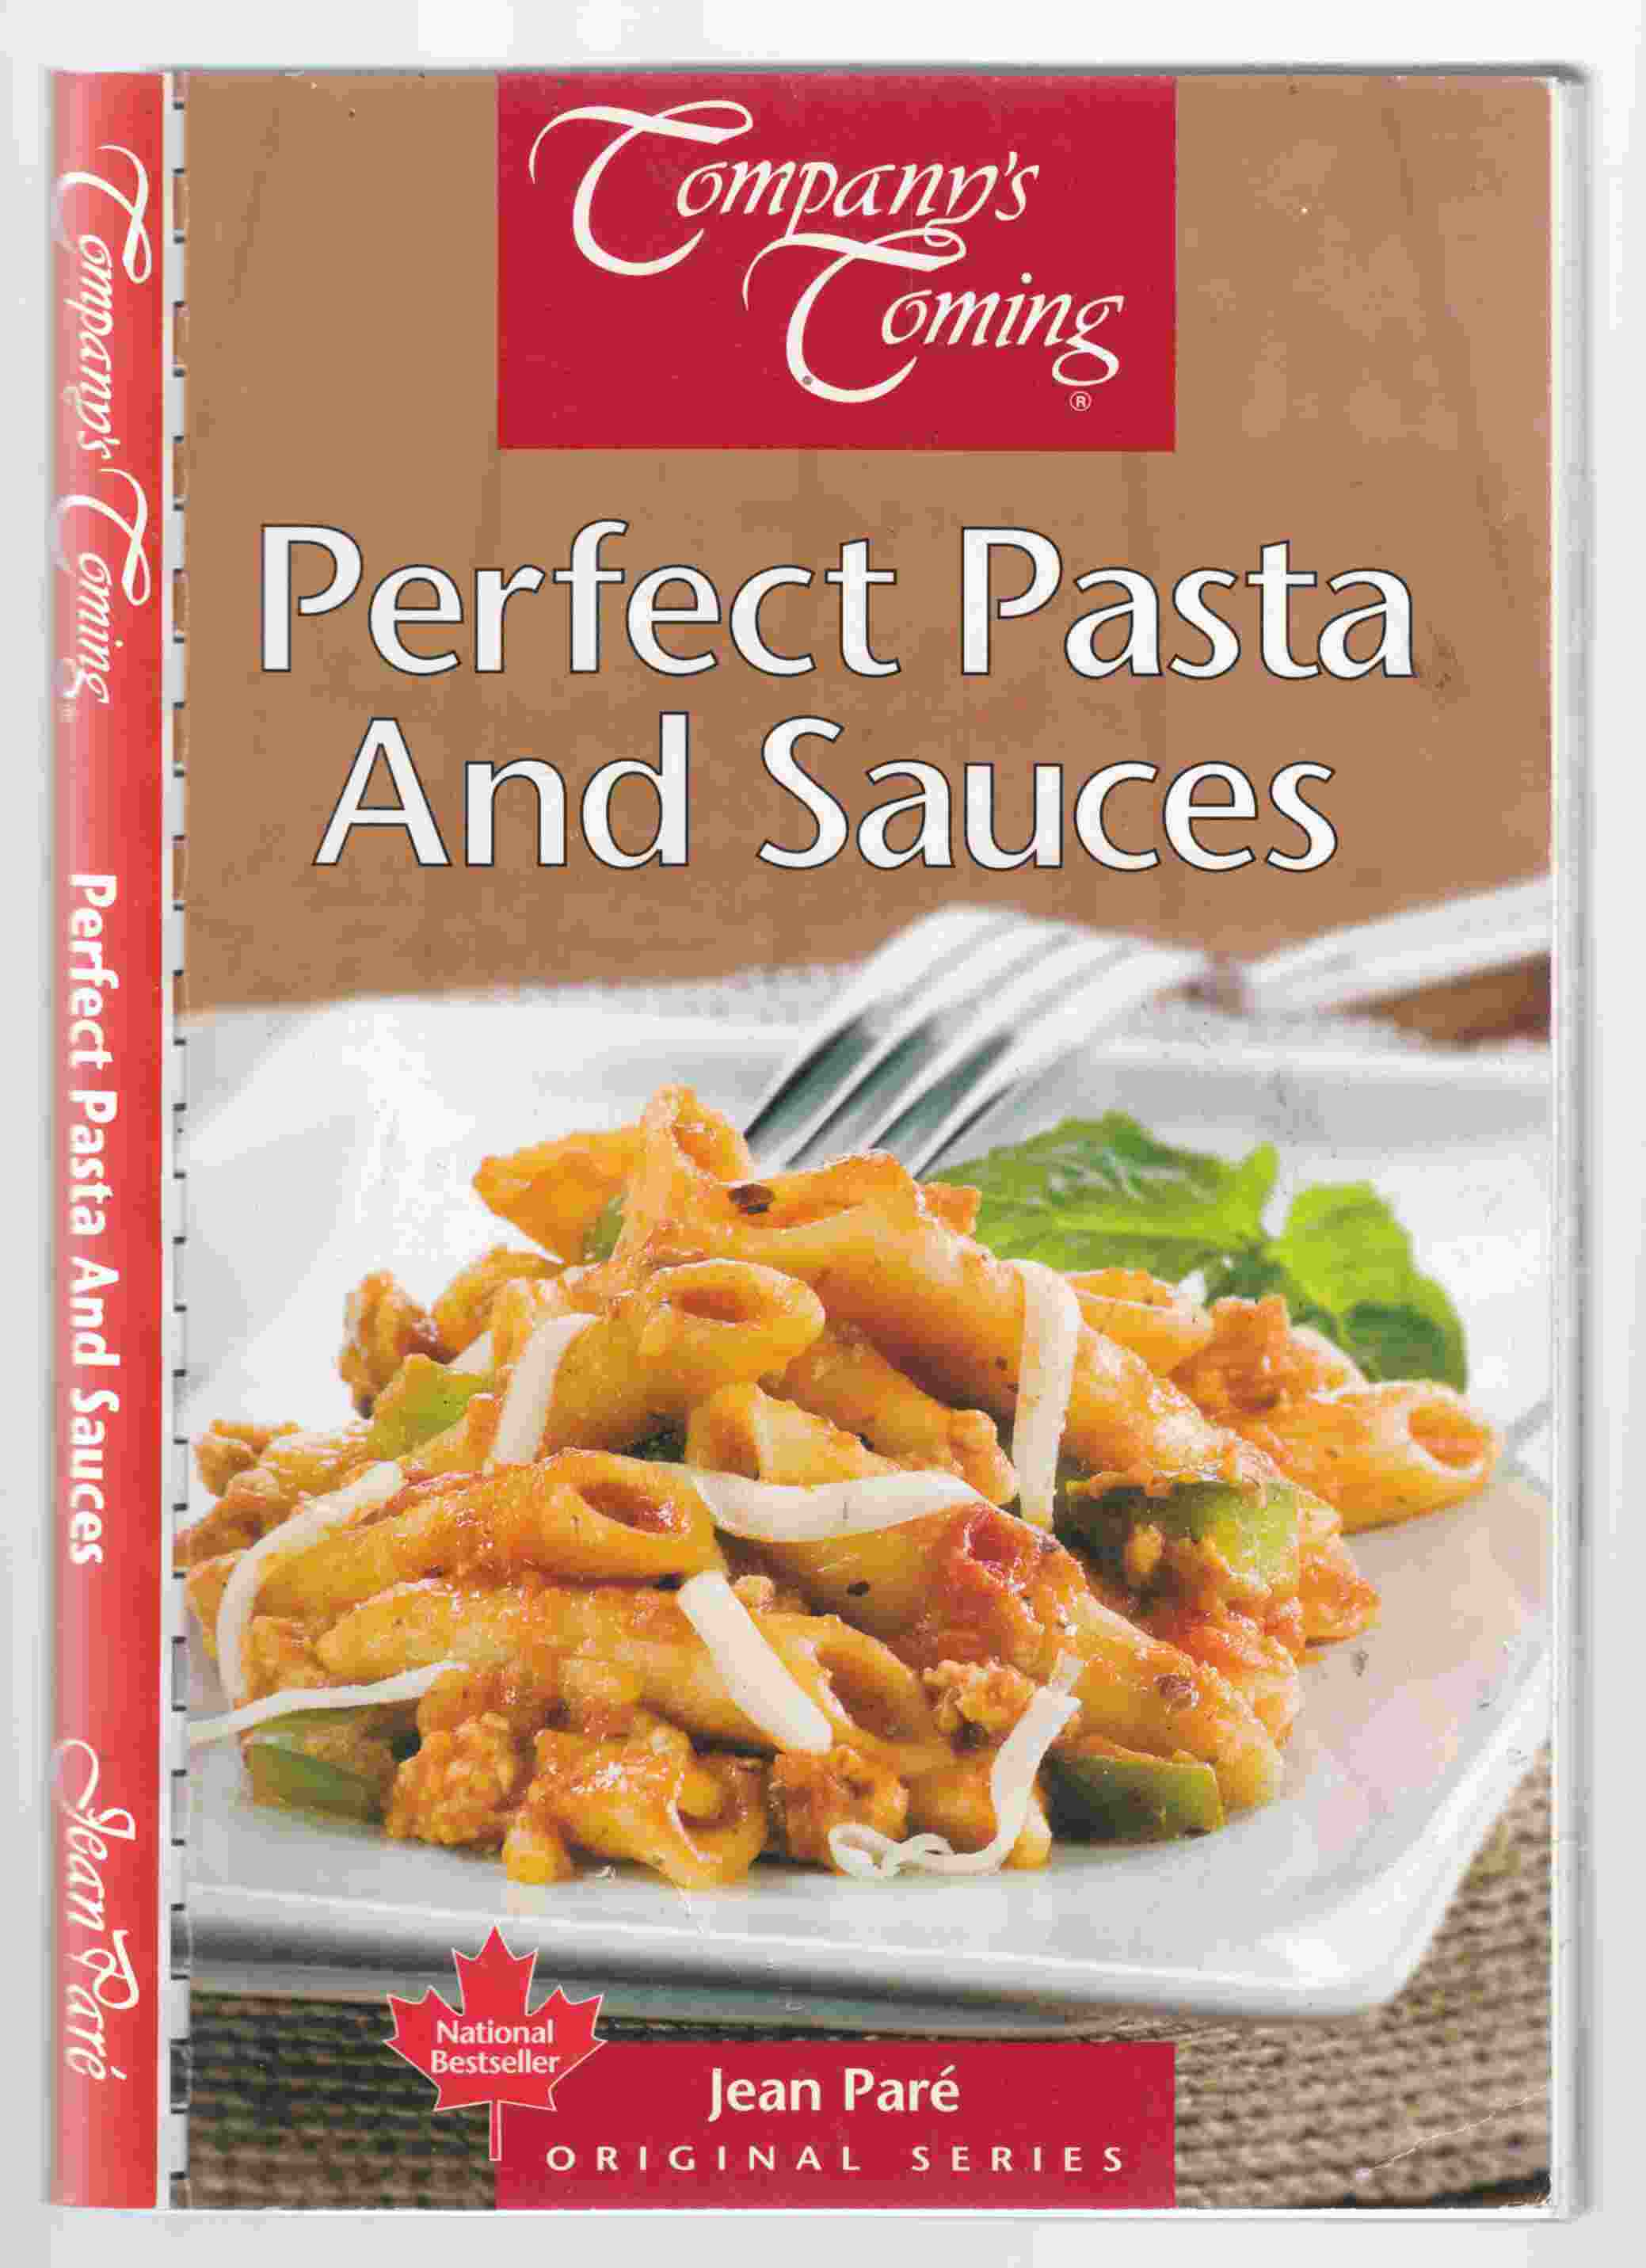 Image for Company's Coming Perfect Pasta and Sauces